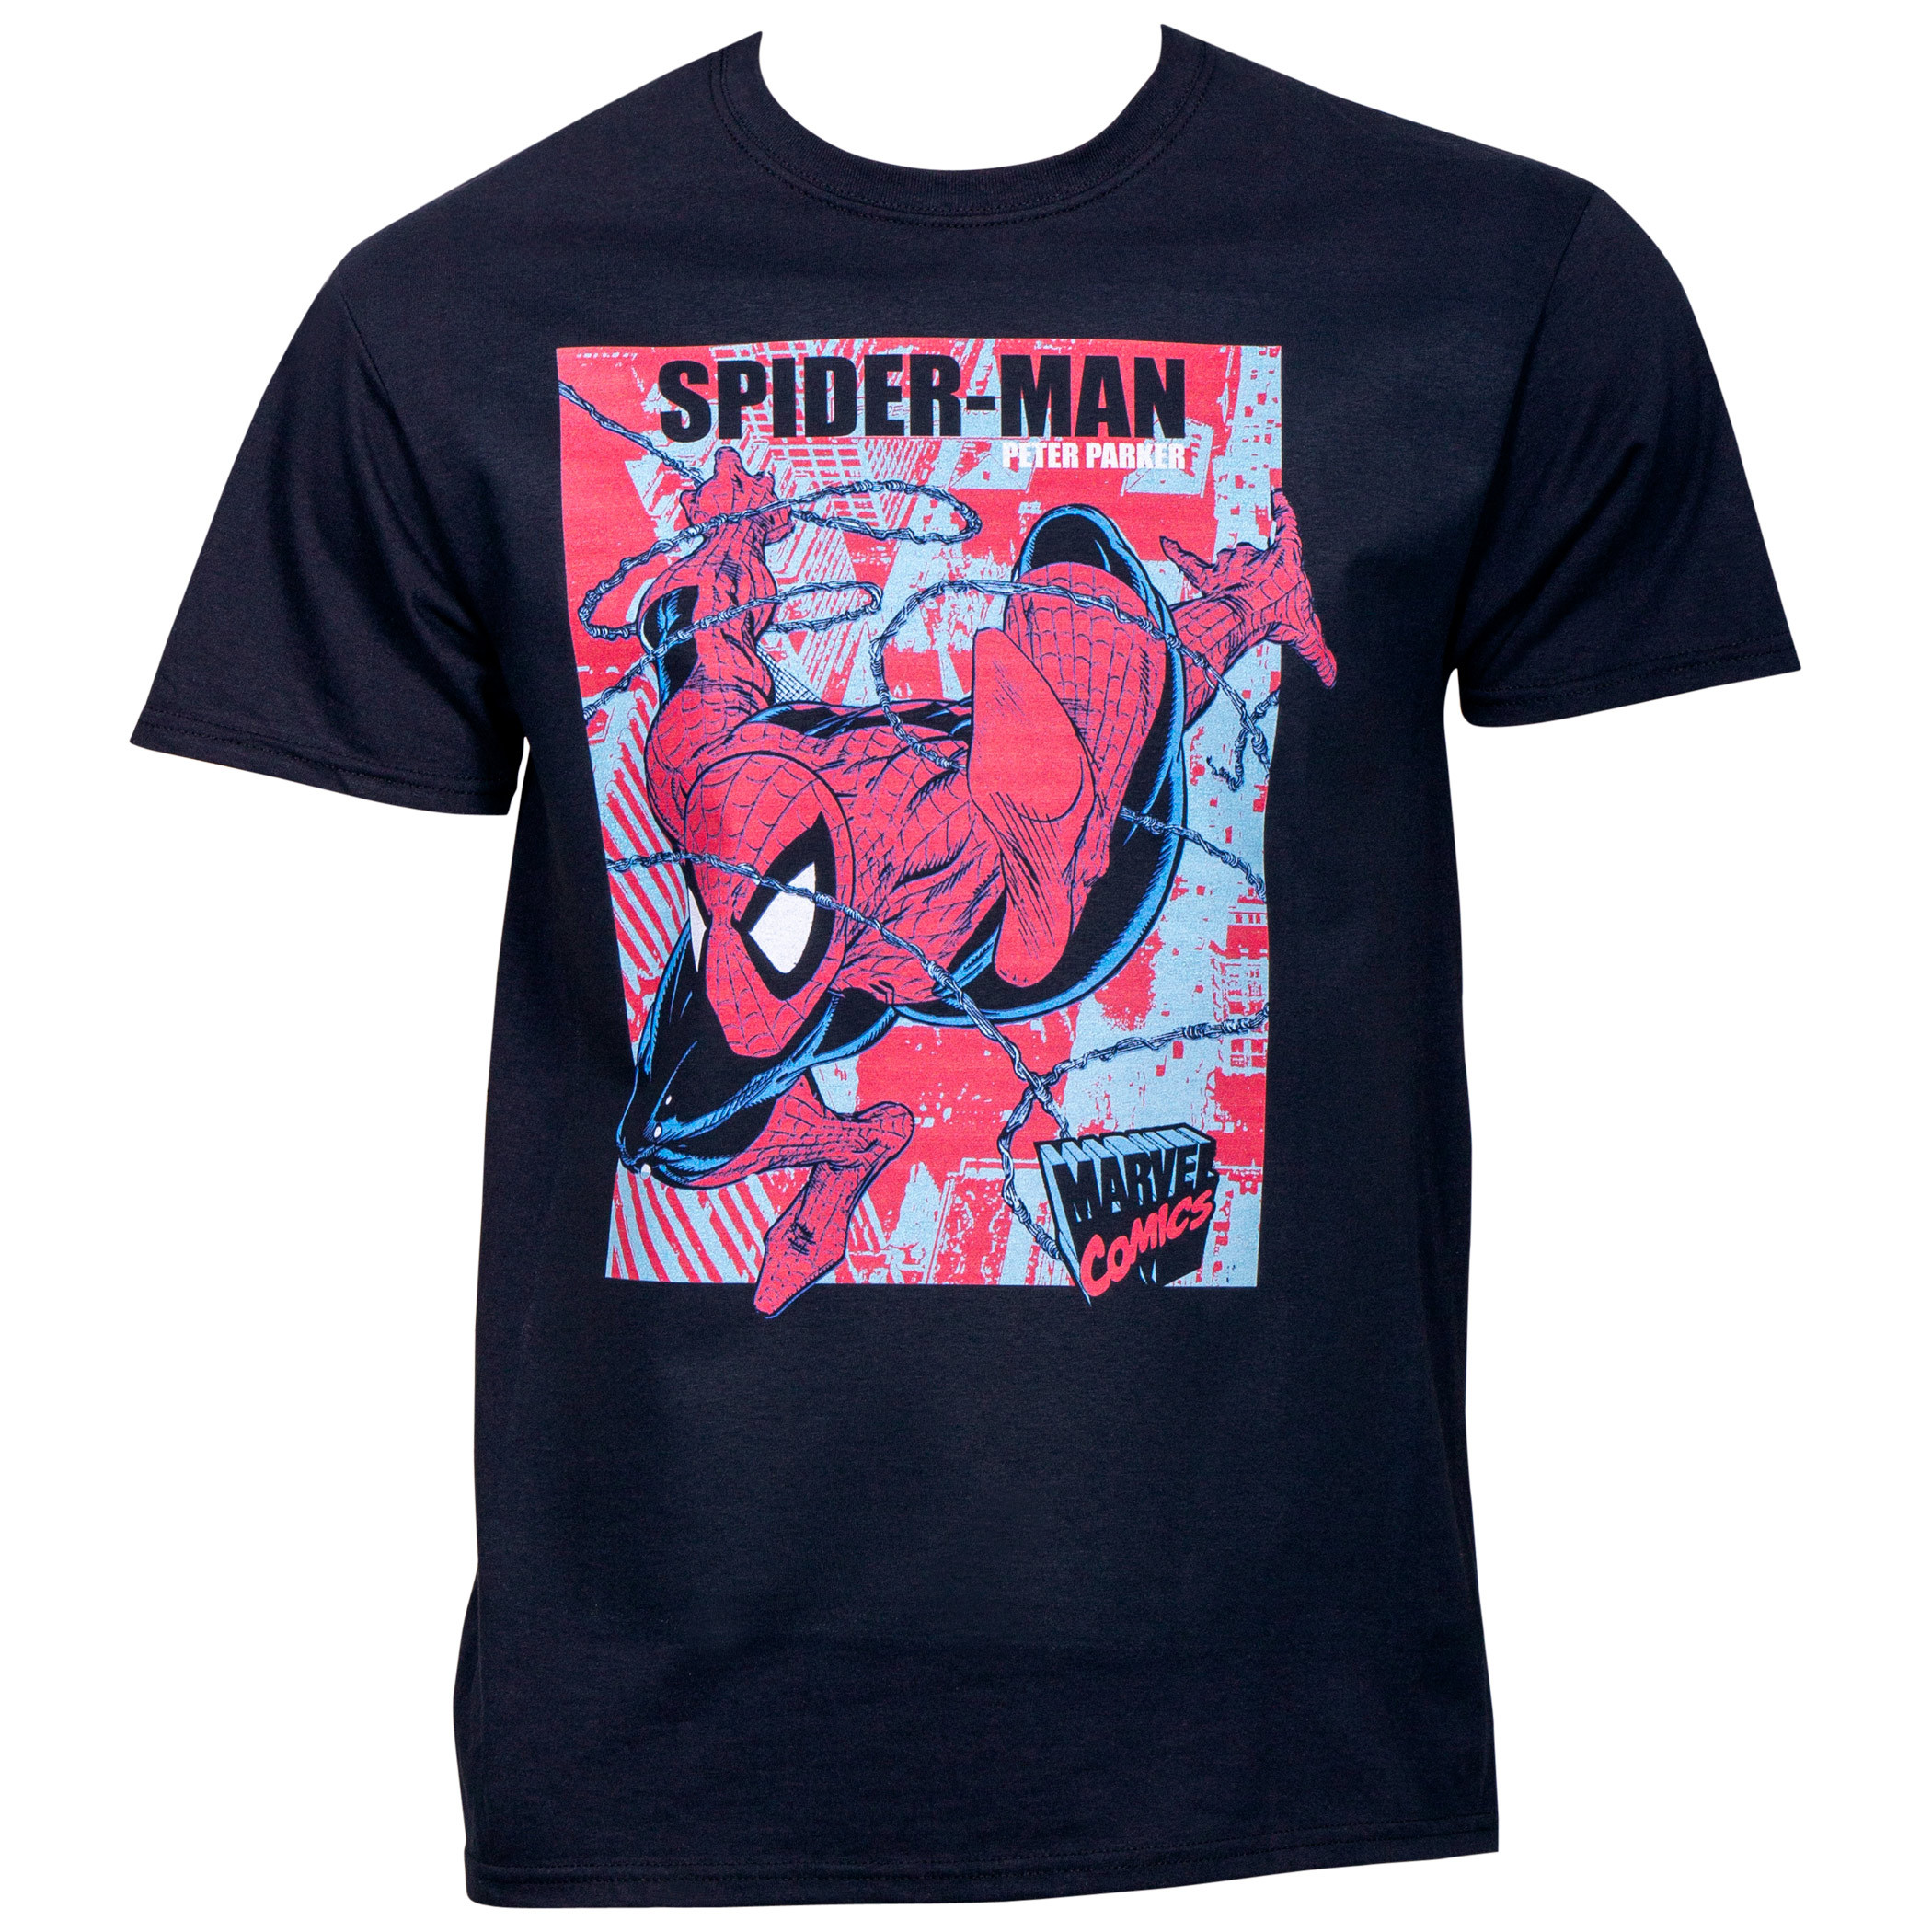 Marvel Comics Spider-Man Peter Parker Swinging Vintage T-Shirt